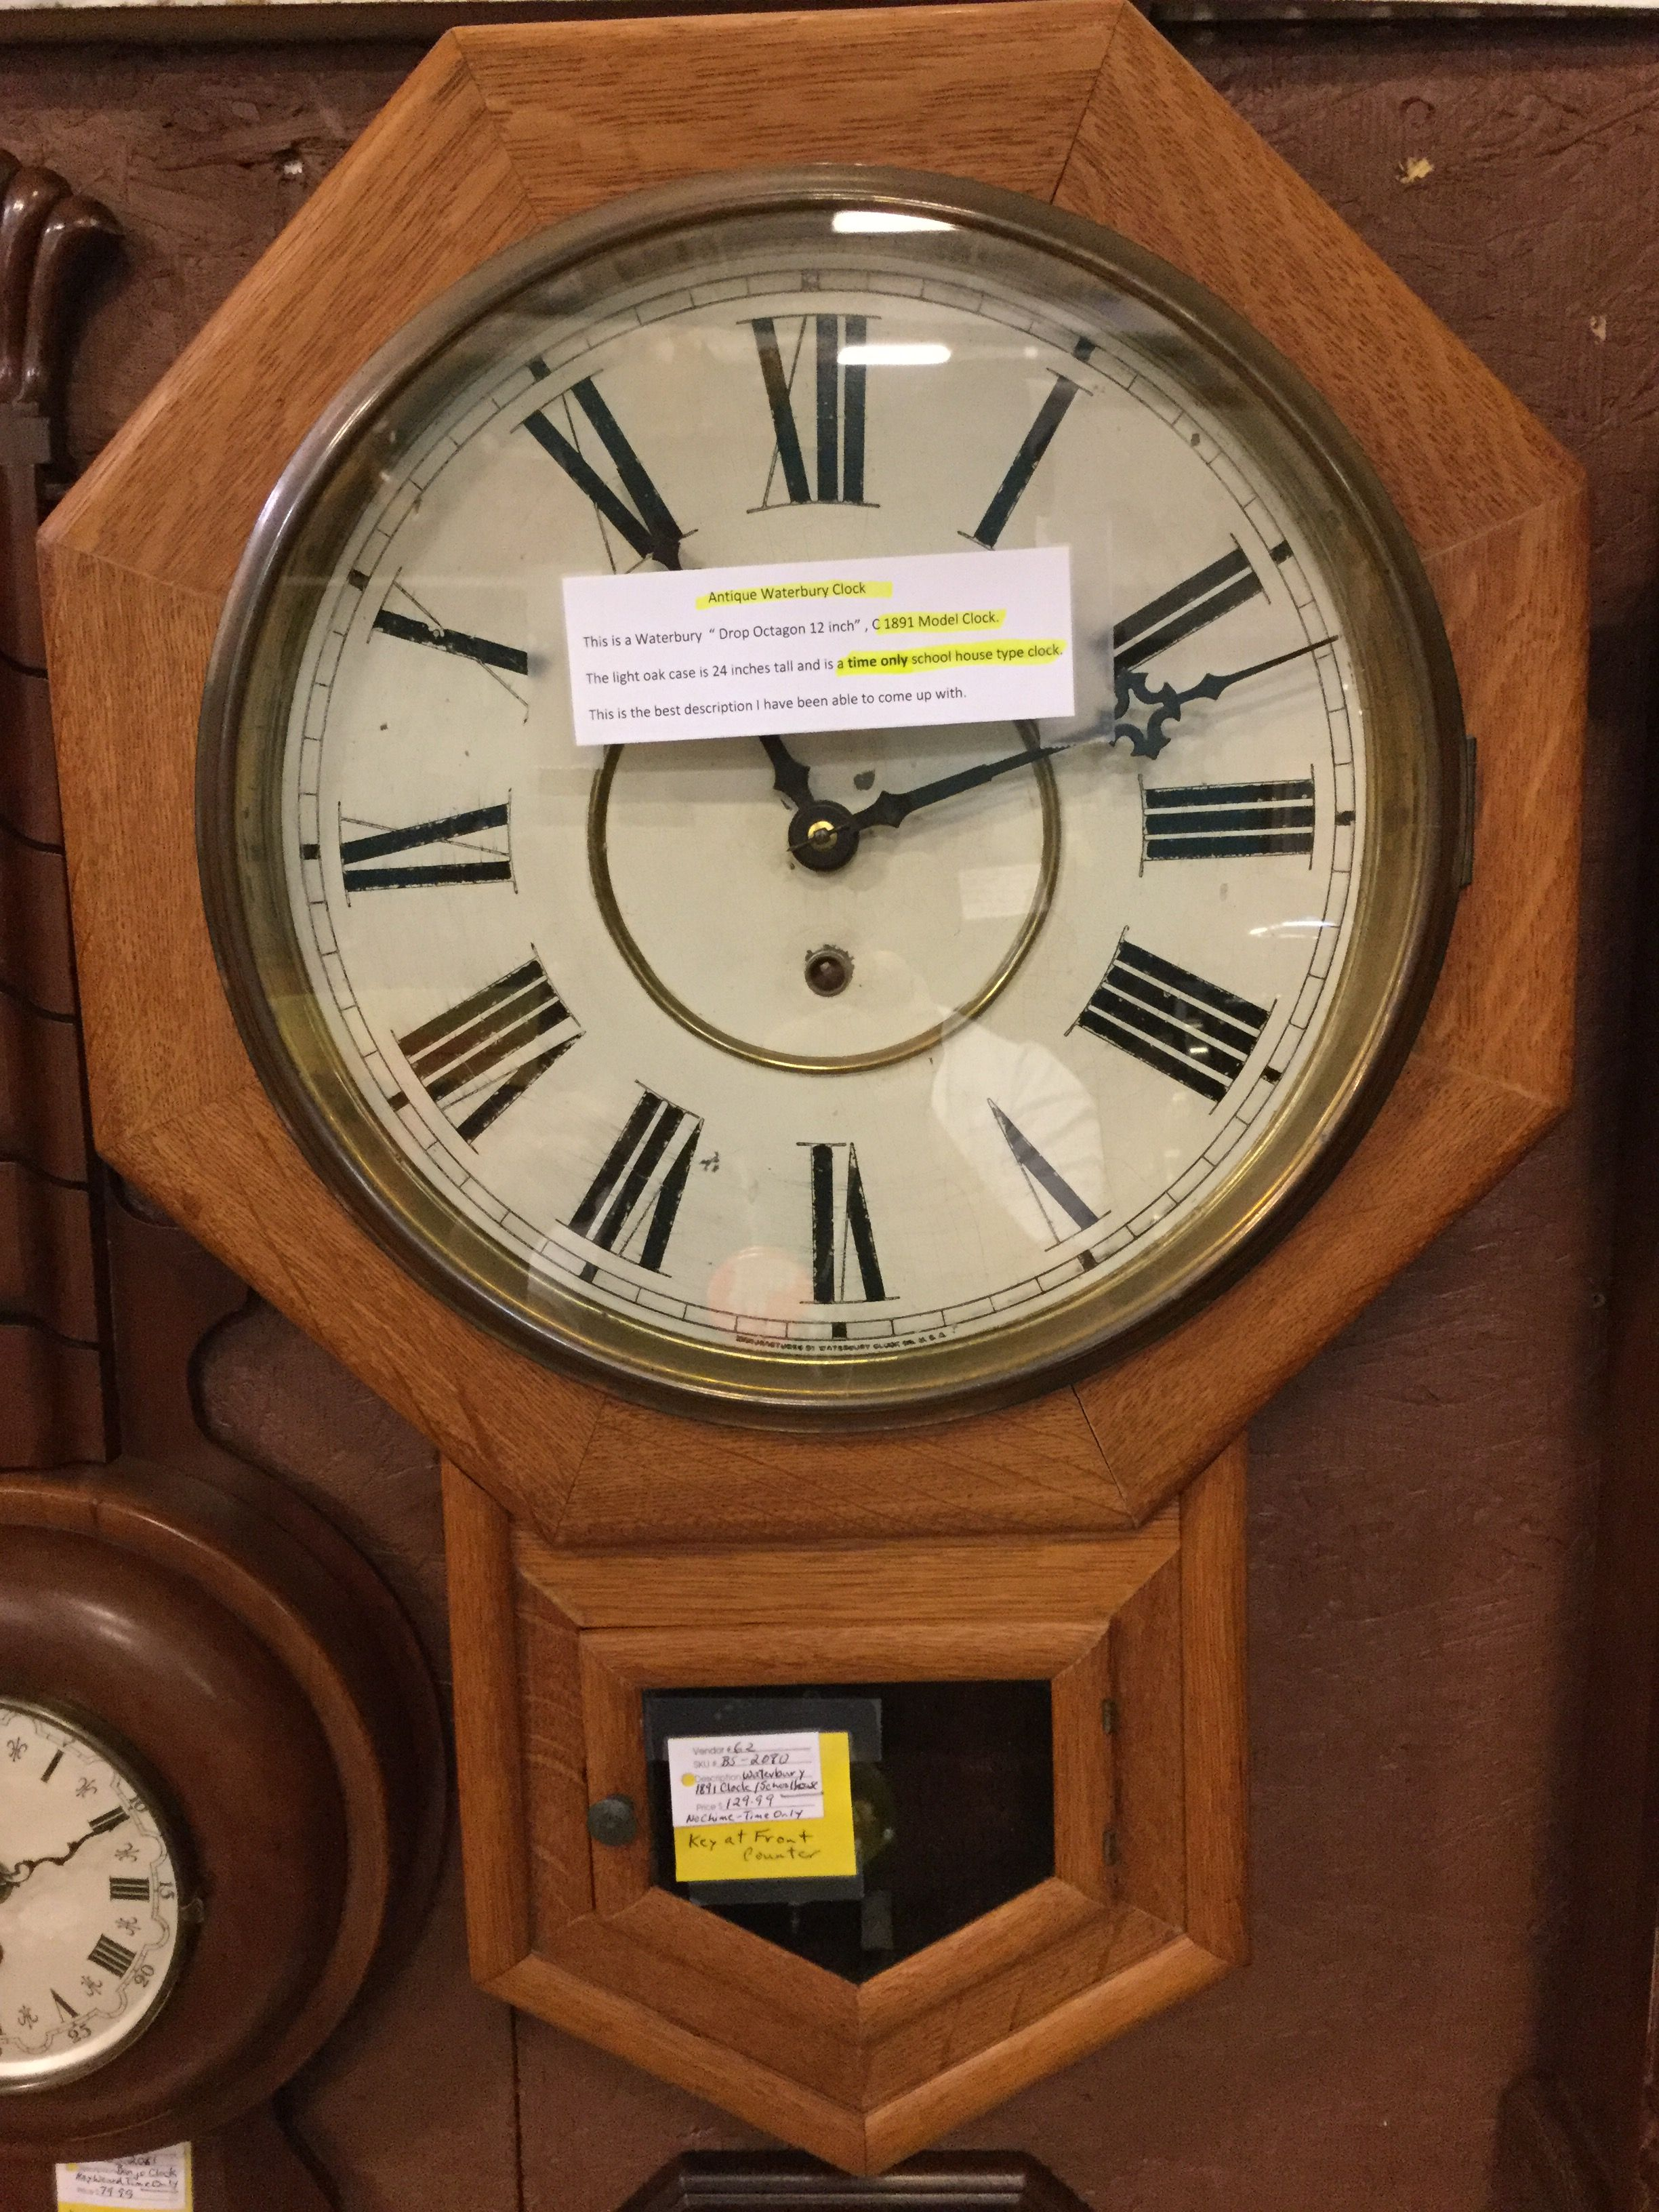 This is an 1870s waterbury drop octagon wall clock it would this is an 1870s waterbury drop octagon wall clock it would commonly be found on business office walls rather than a schoolhouse because it chime aloadofball Choice Image